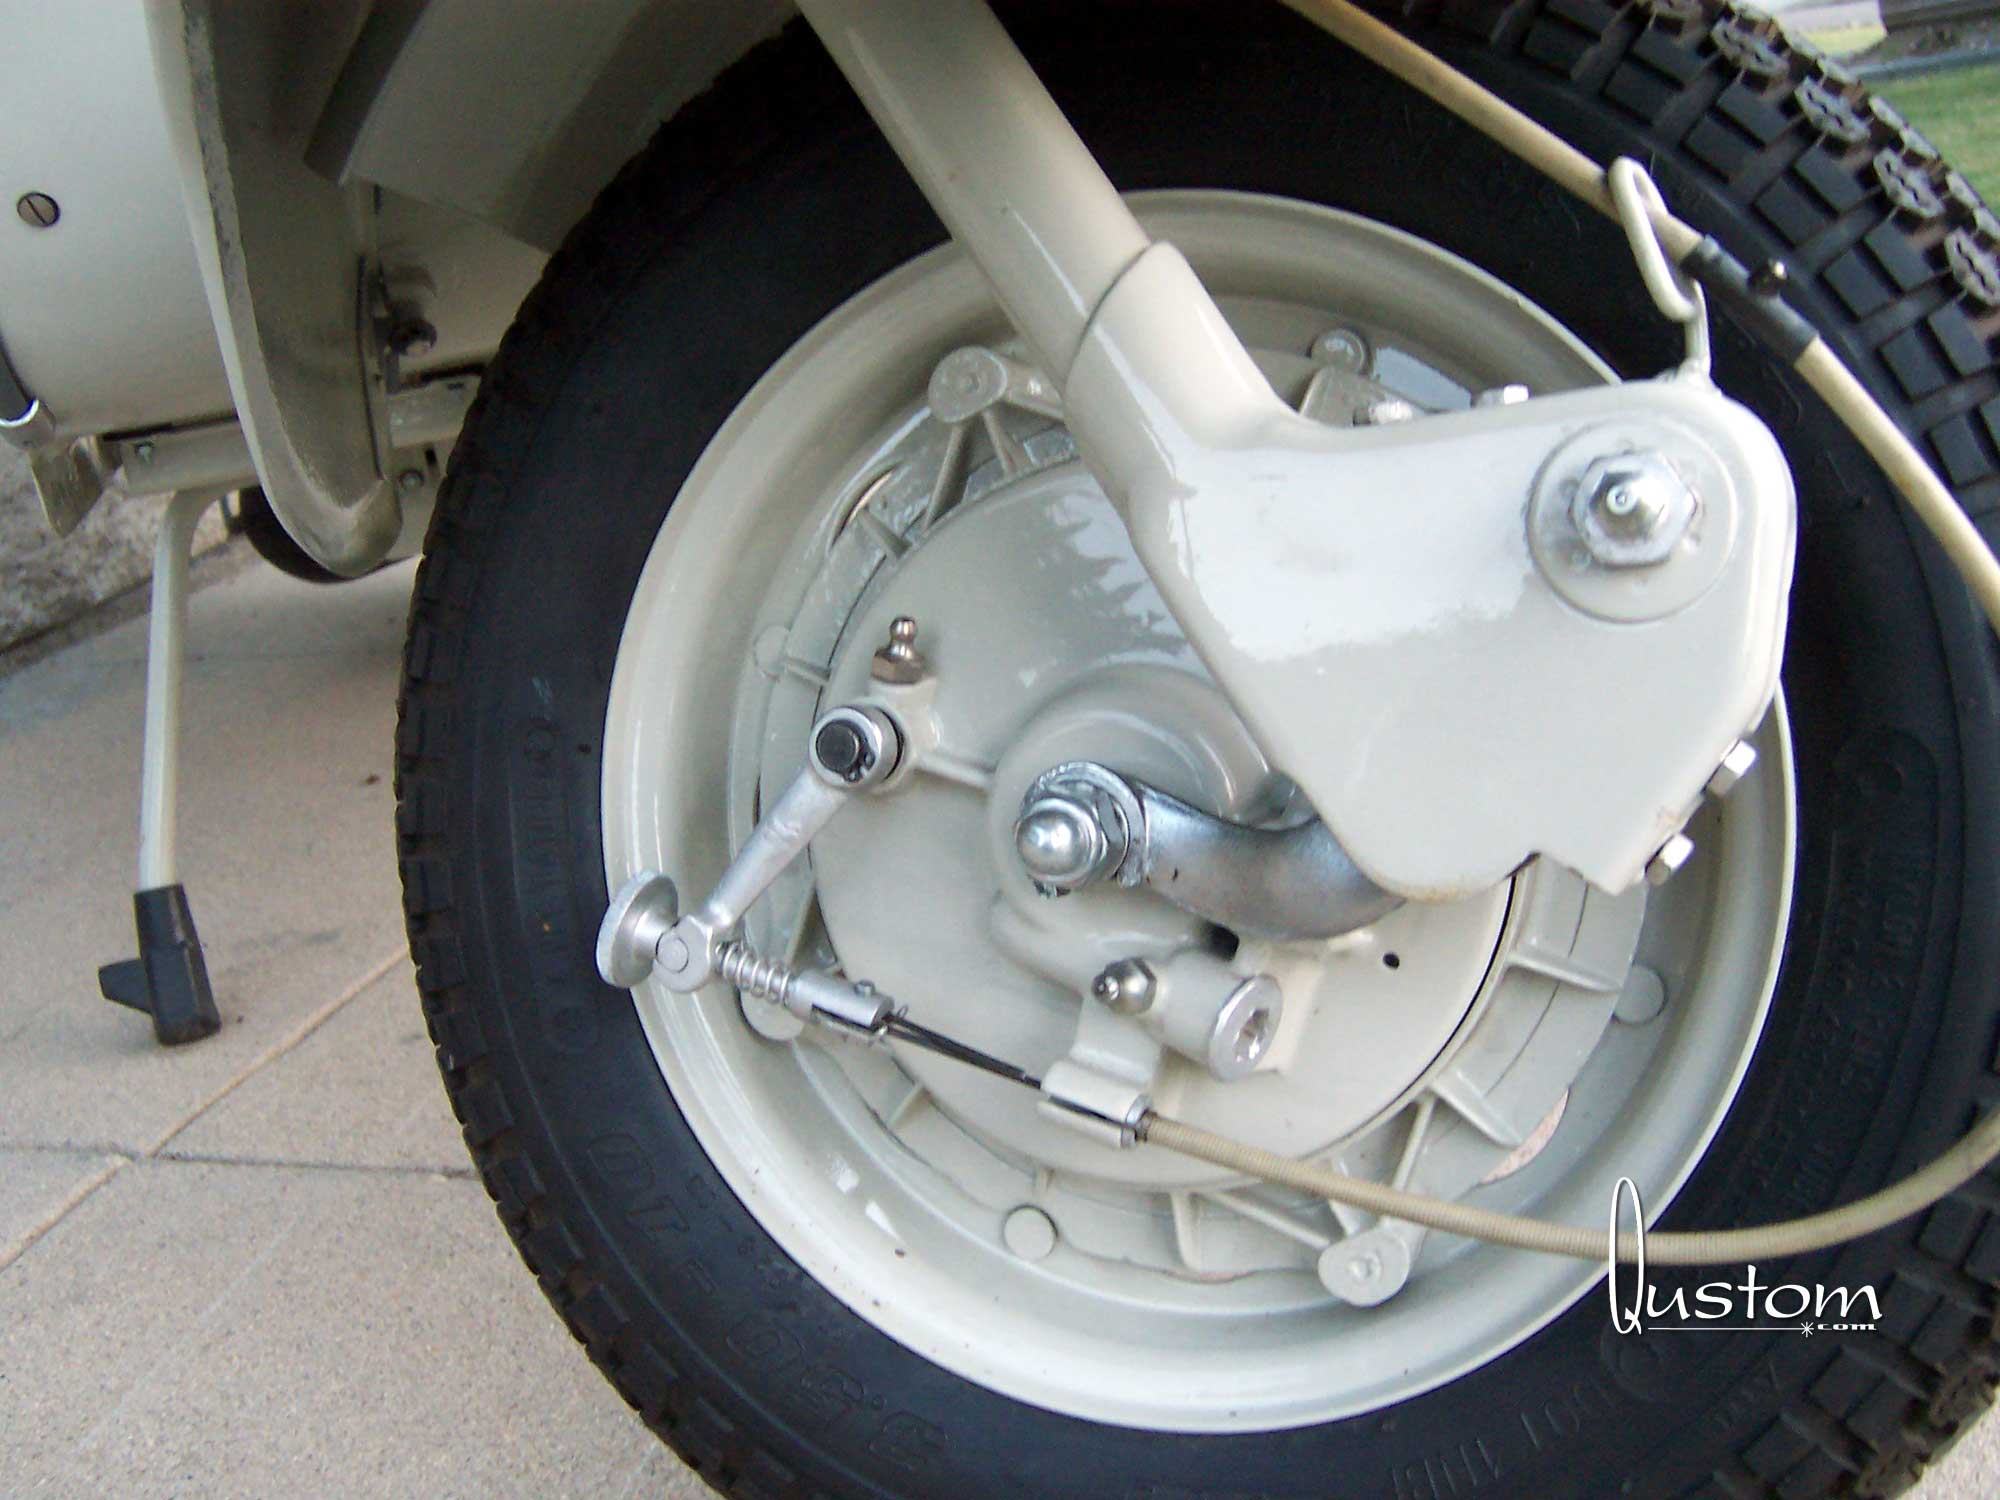 05-tim-white-front-wheel-right.jpg